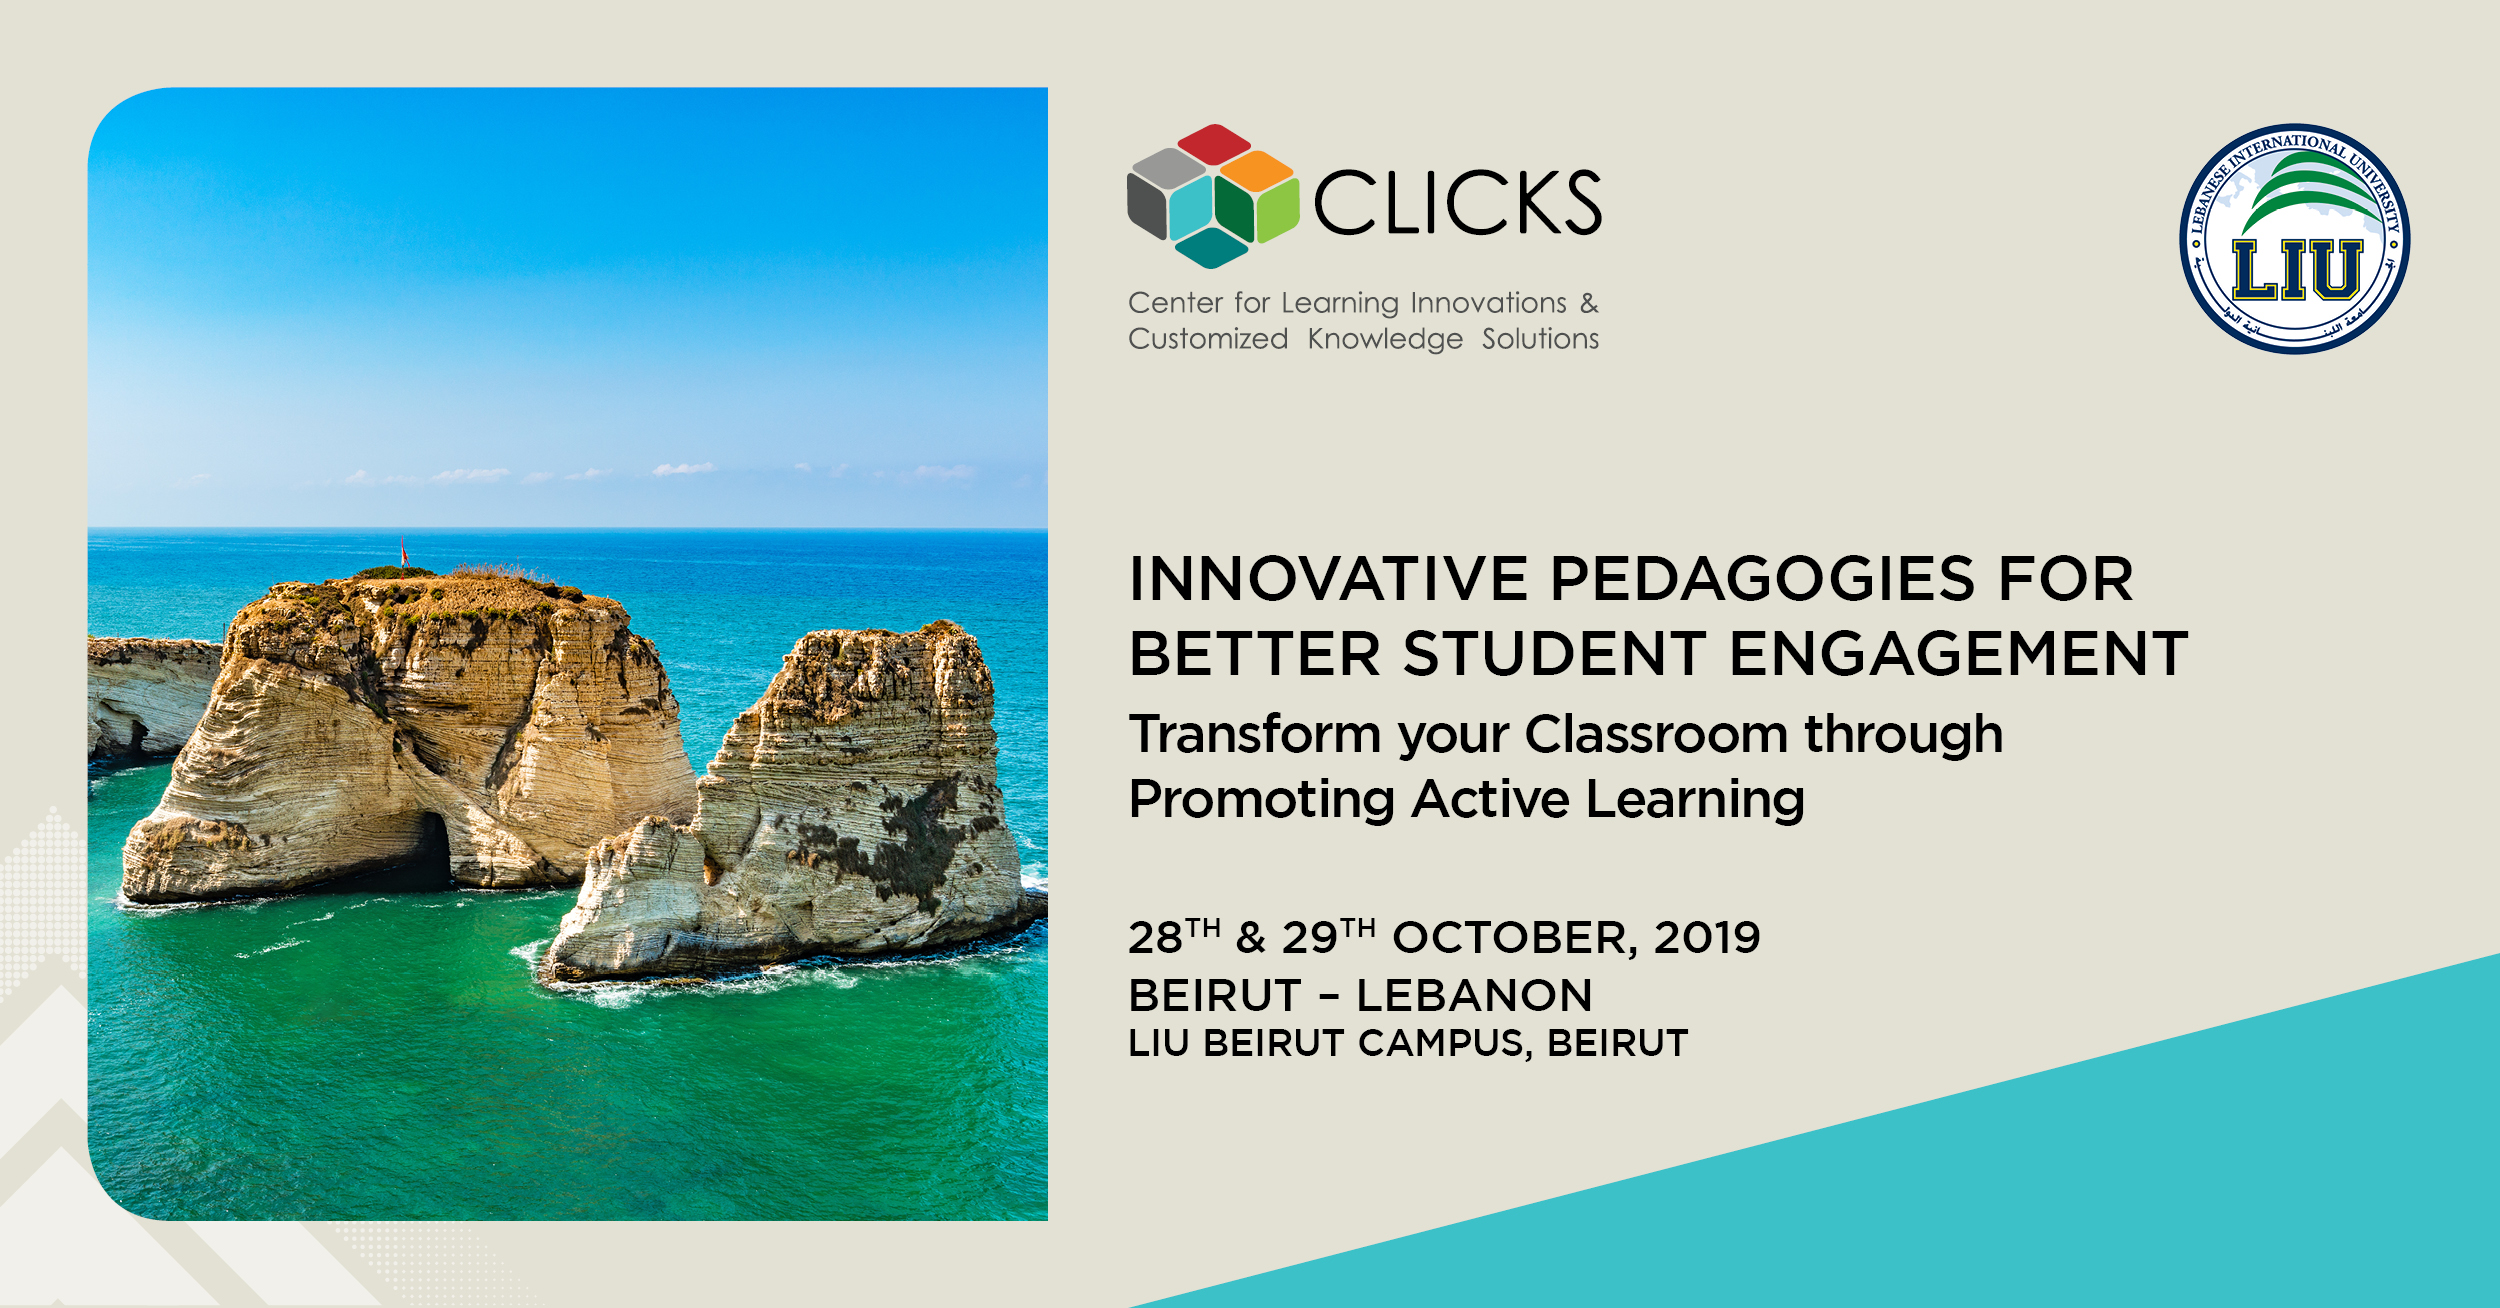 Clicks – Center for Learning Innovations & Customized Knowledge